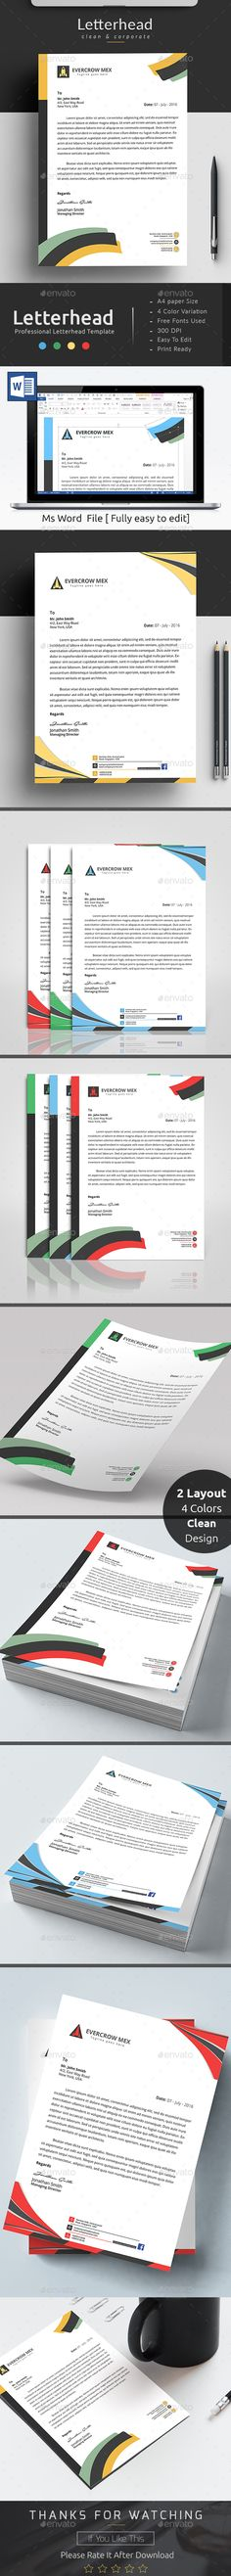 MS Word Letterhead Template Letterhead template, Template and - ms word letterhead templates free download